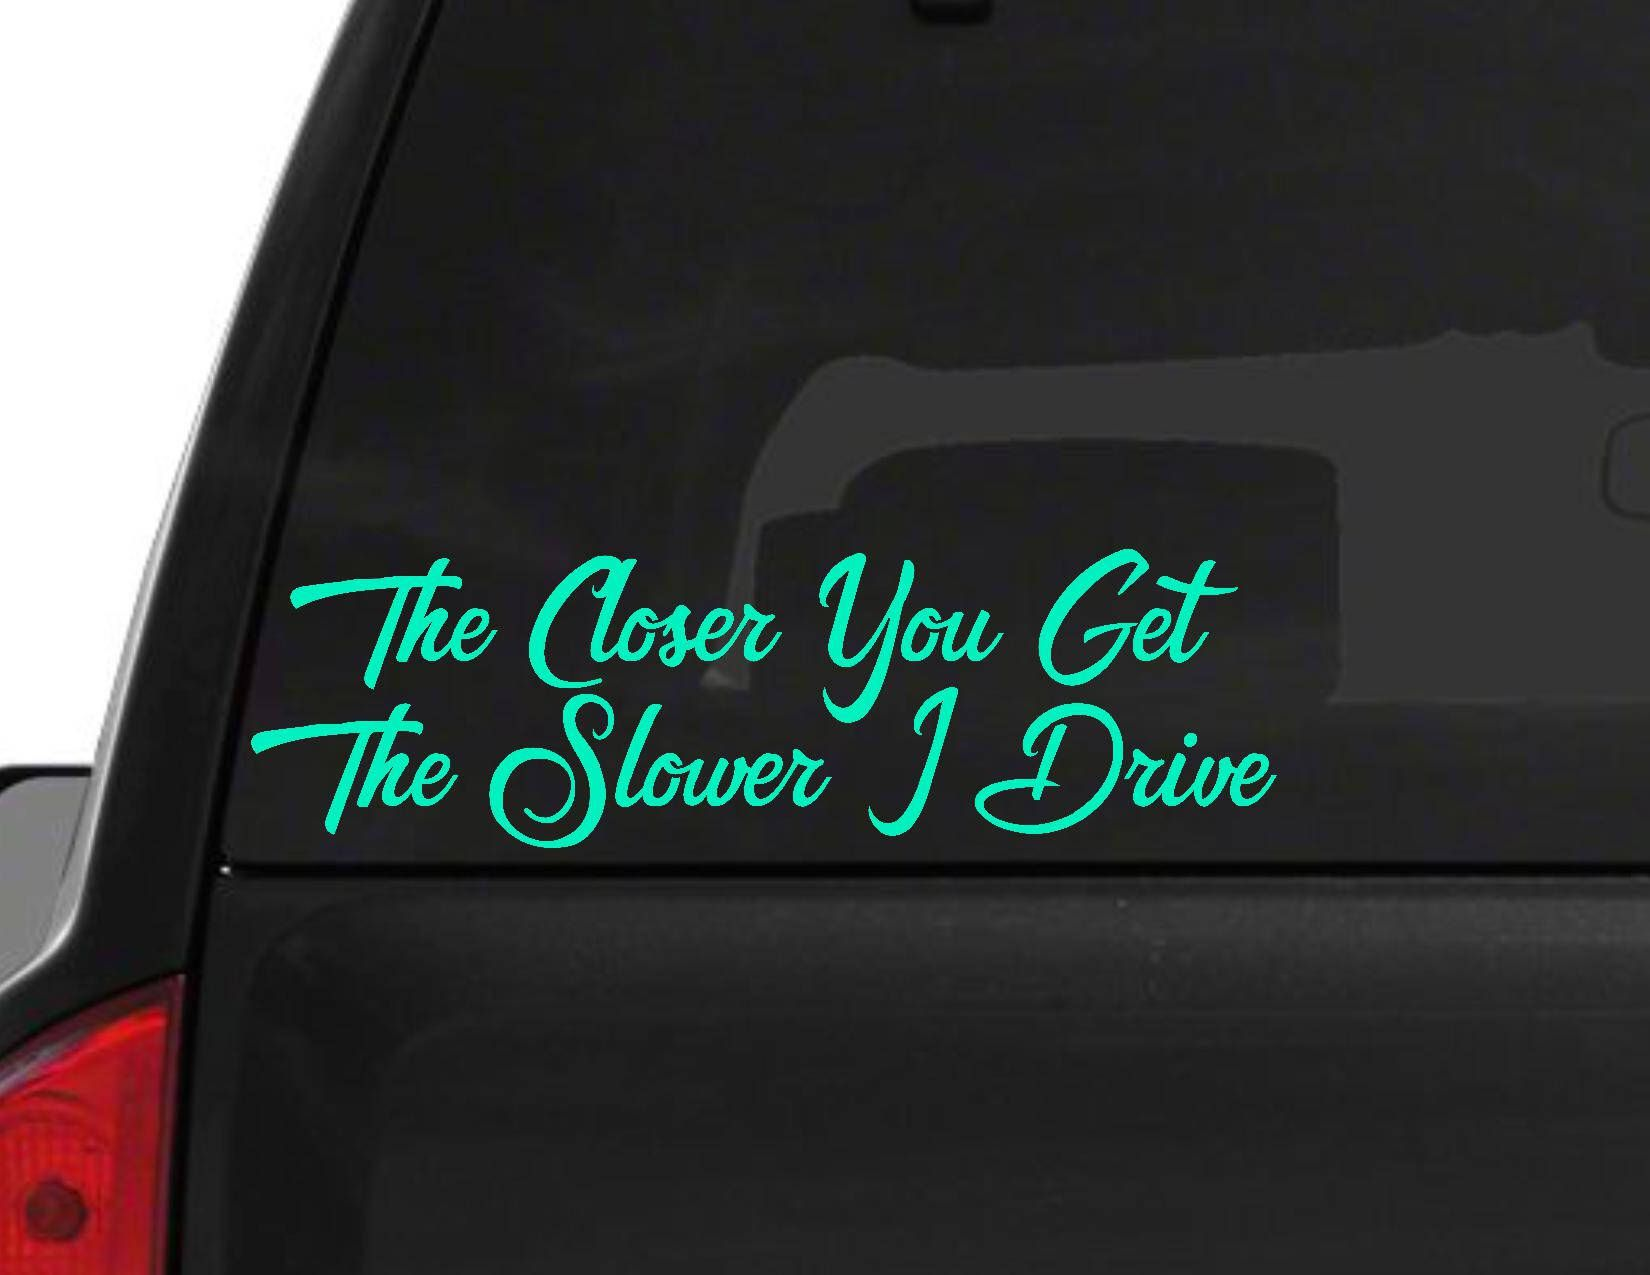 Funny decals funny bumper stickers truck decals car stickers vinyl decals